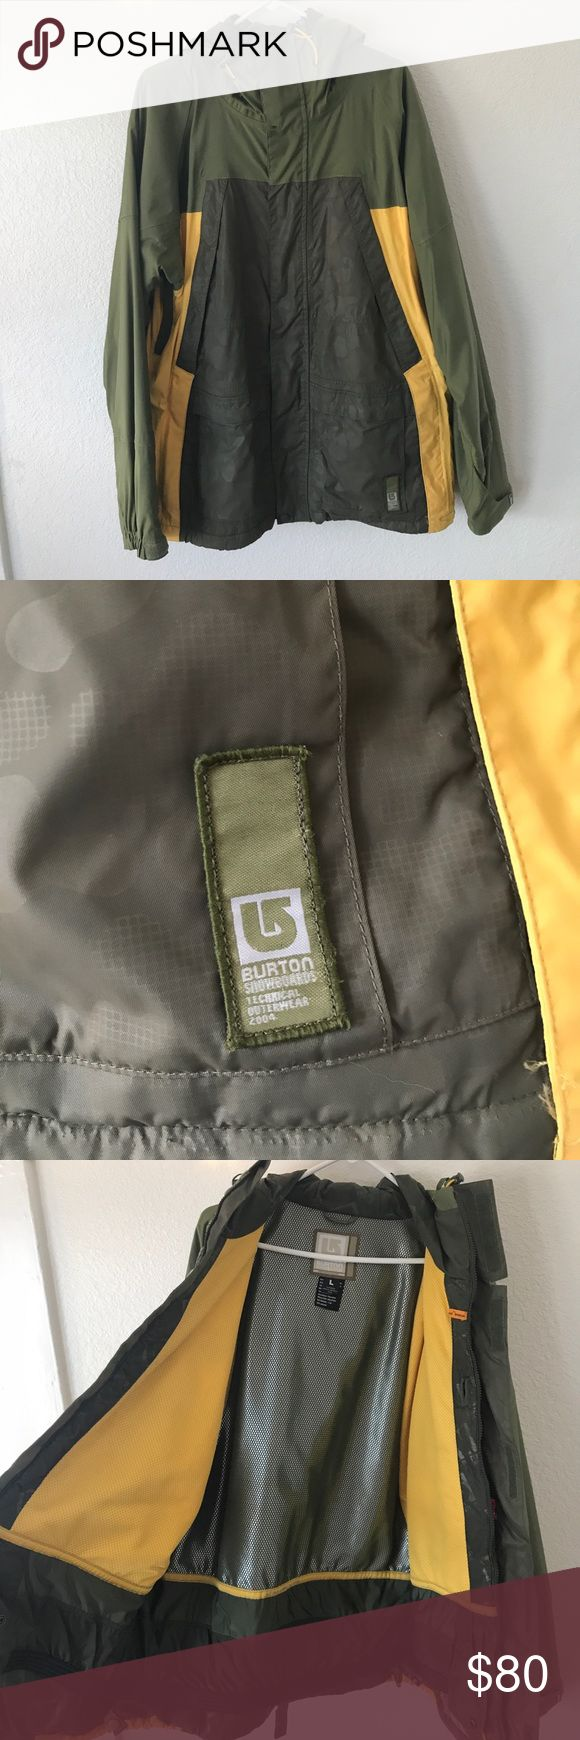 BURTON snowboard jacket Men's large brand new jacket. Cool army green and goldenrod yellow colors. A million pockets, great insulation and quality. Active lining system.nwot bundle and save!! Burton Jackets & Coats Ski & Snowboard